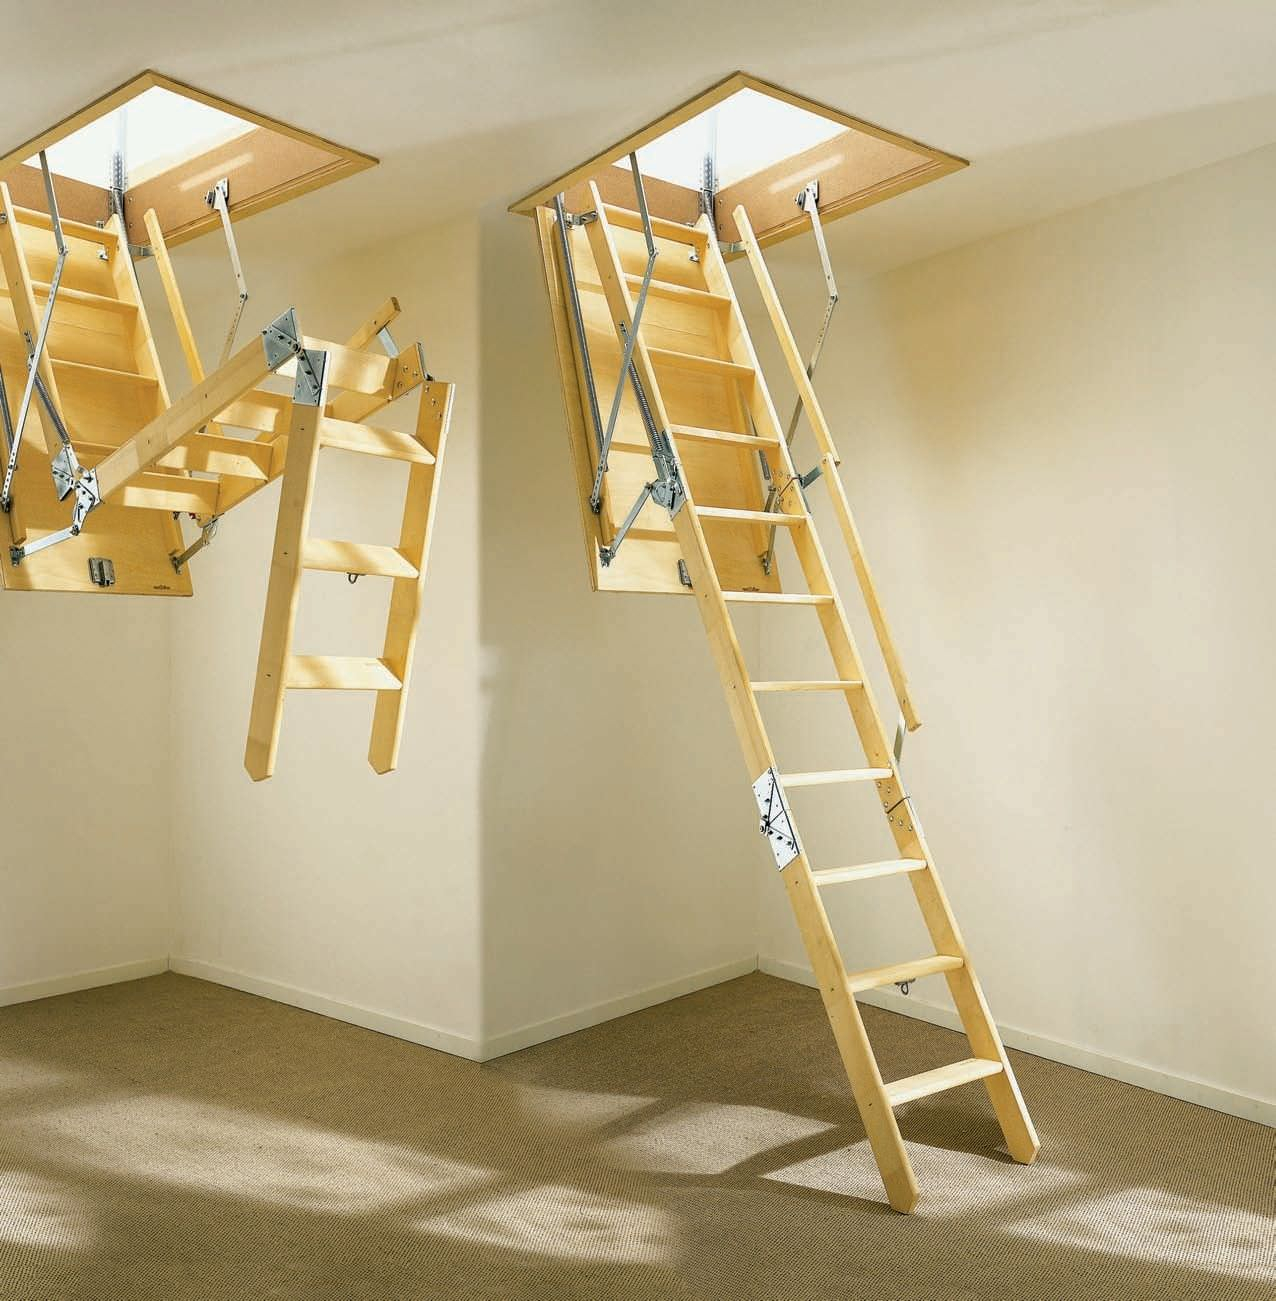 Attic Stairs Maximize The Room With Easy Access Resolve40 within size 1276 X 1301